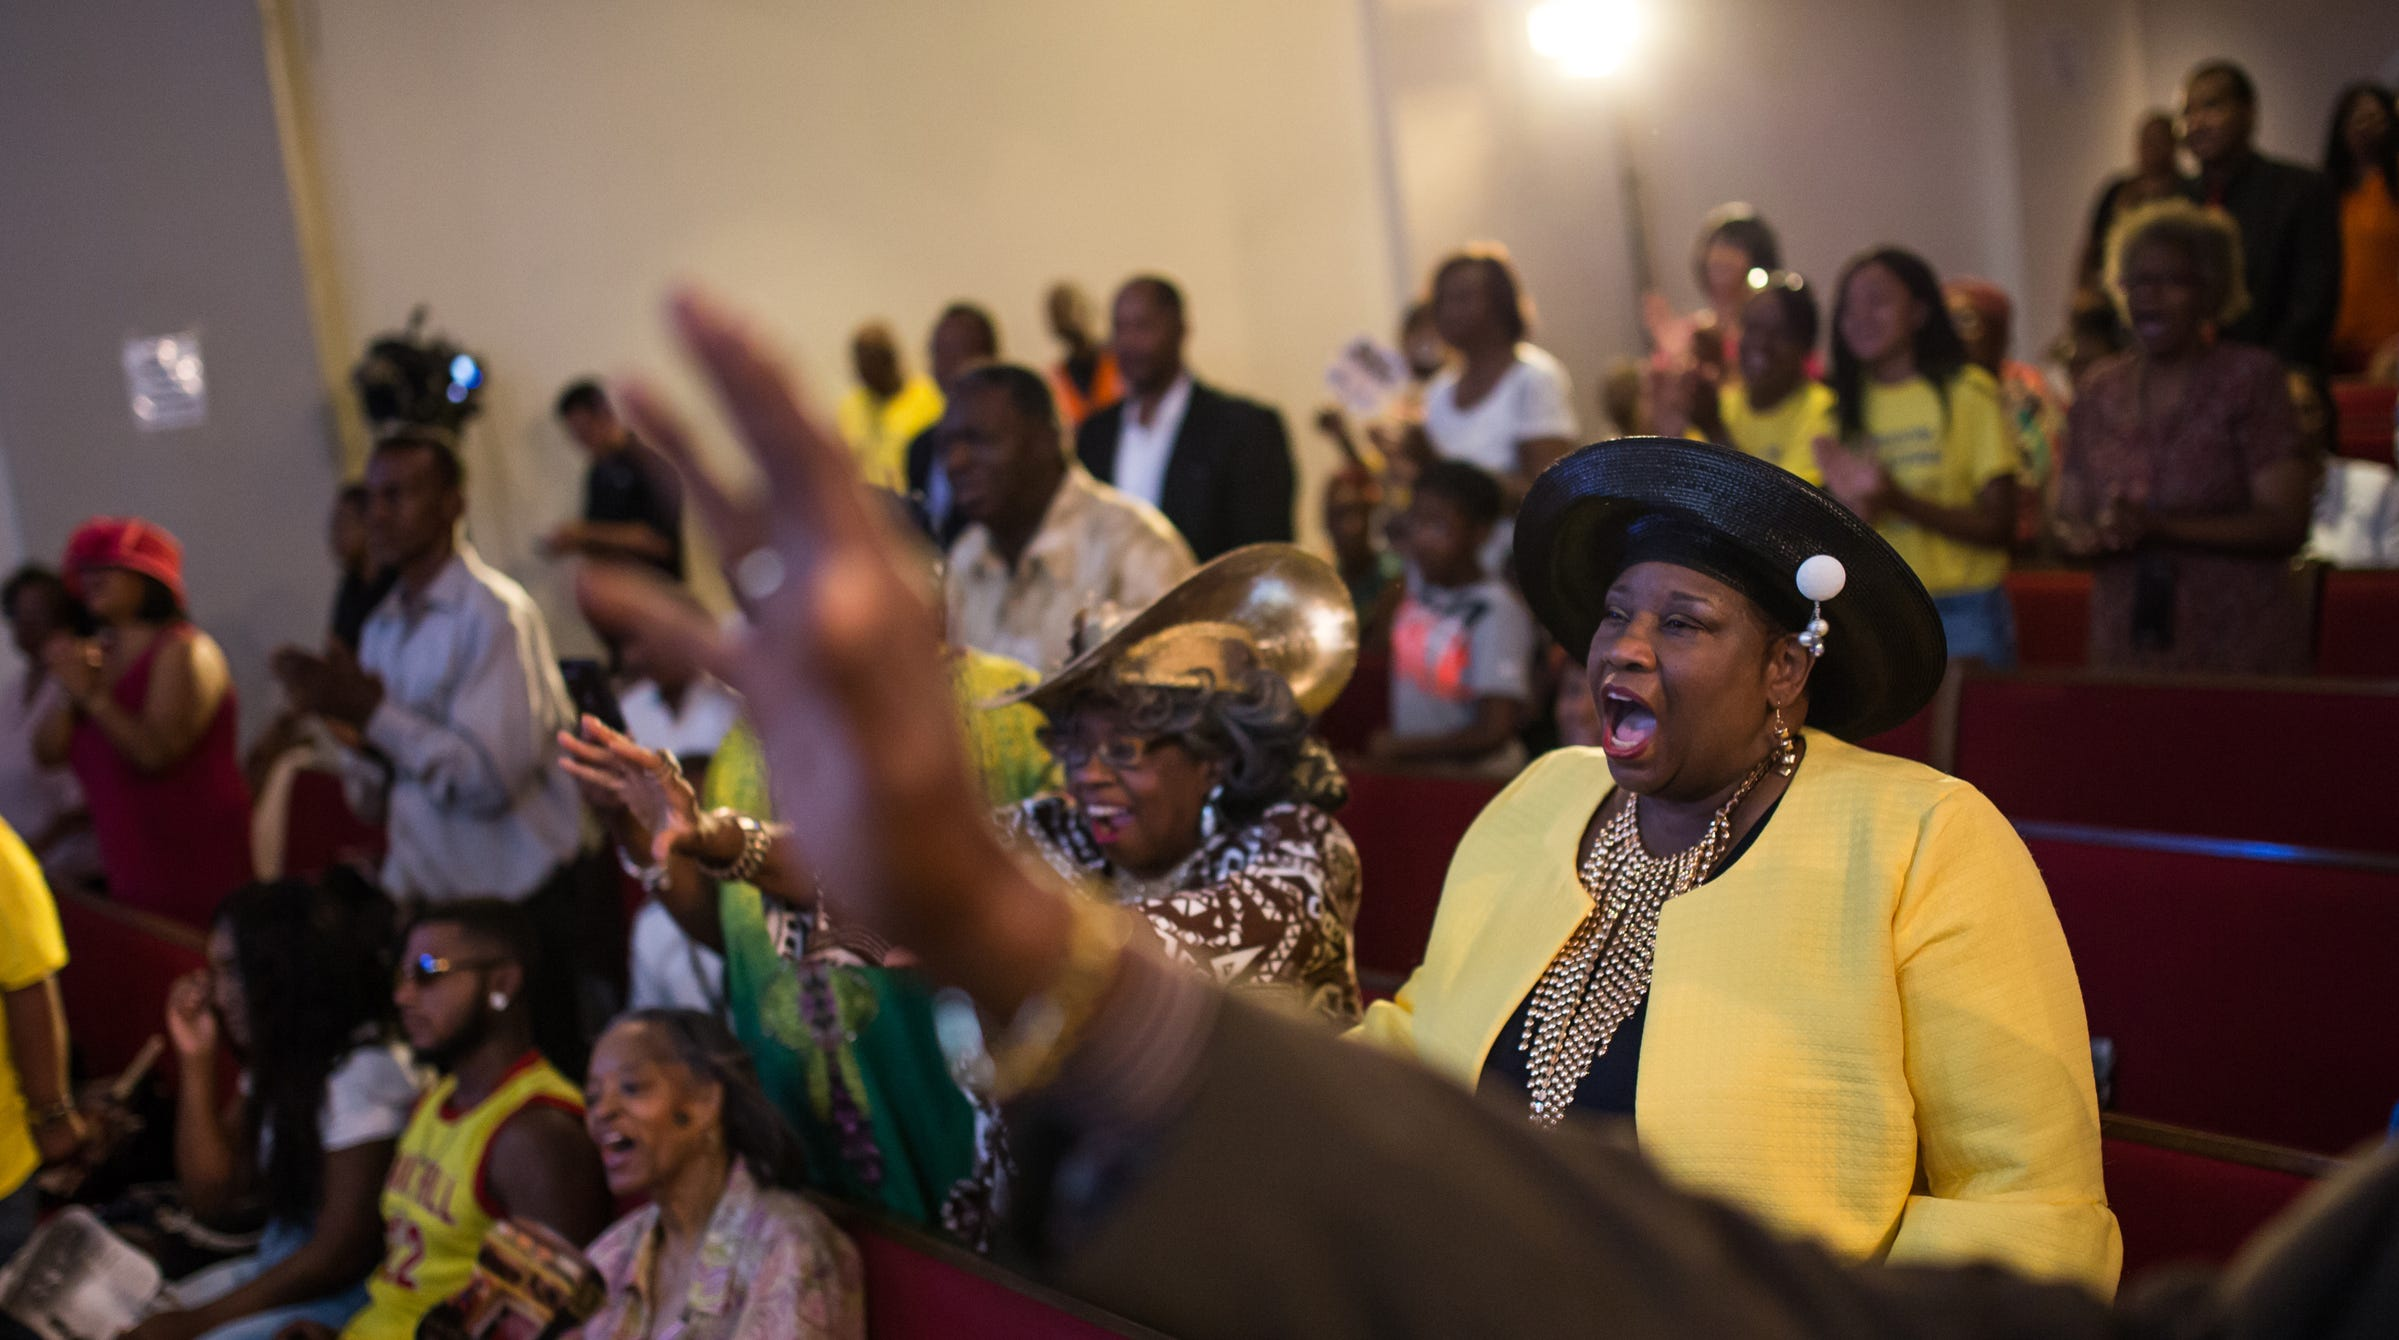 Peggy Tyler of Detroit, center, and Fannie Tyler of Detroit, left, shout along with the congregation during service as the Rev. Jesse Jackson speaks at New Bethel Baptist Church in Detroit where Aretha Franklin grew up attending on Sunday, August 19, 2018.